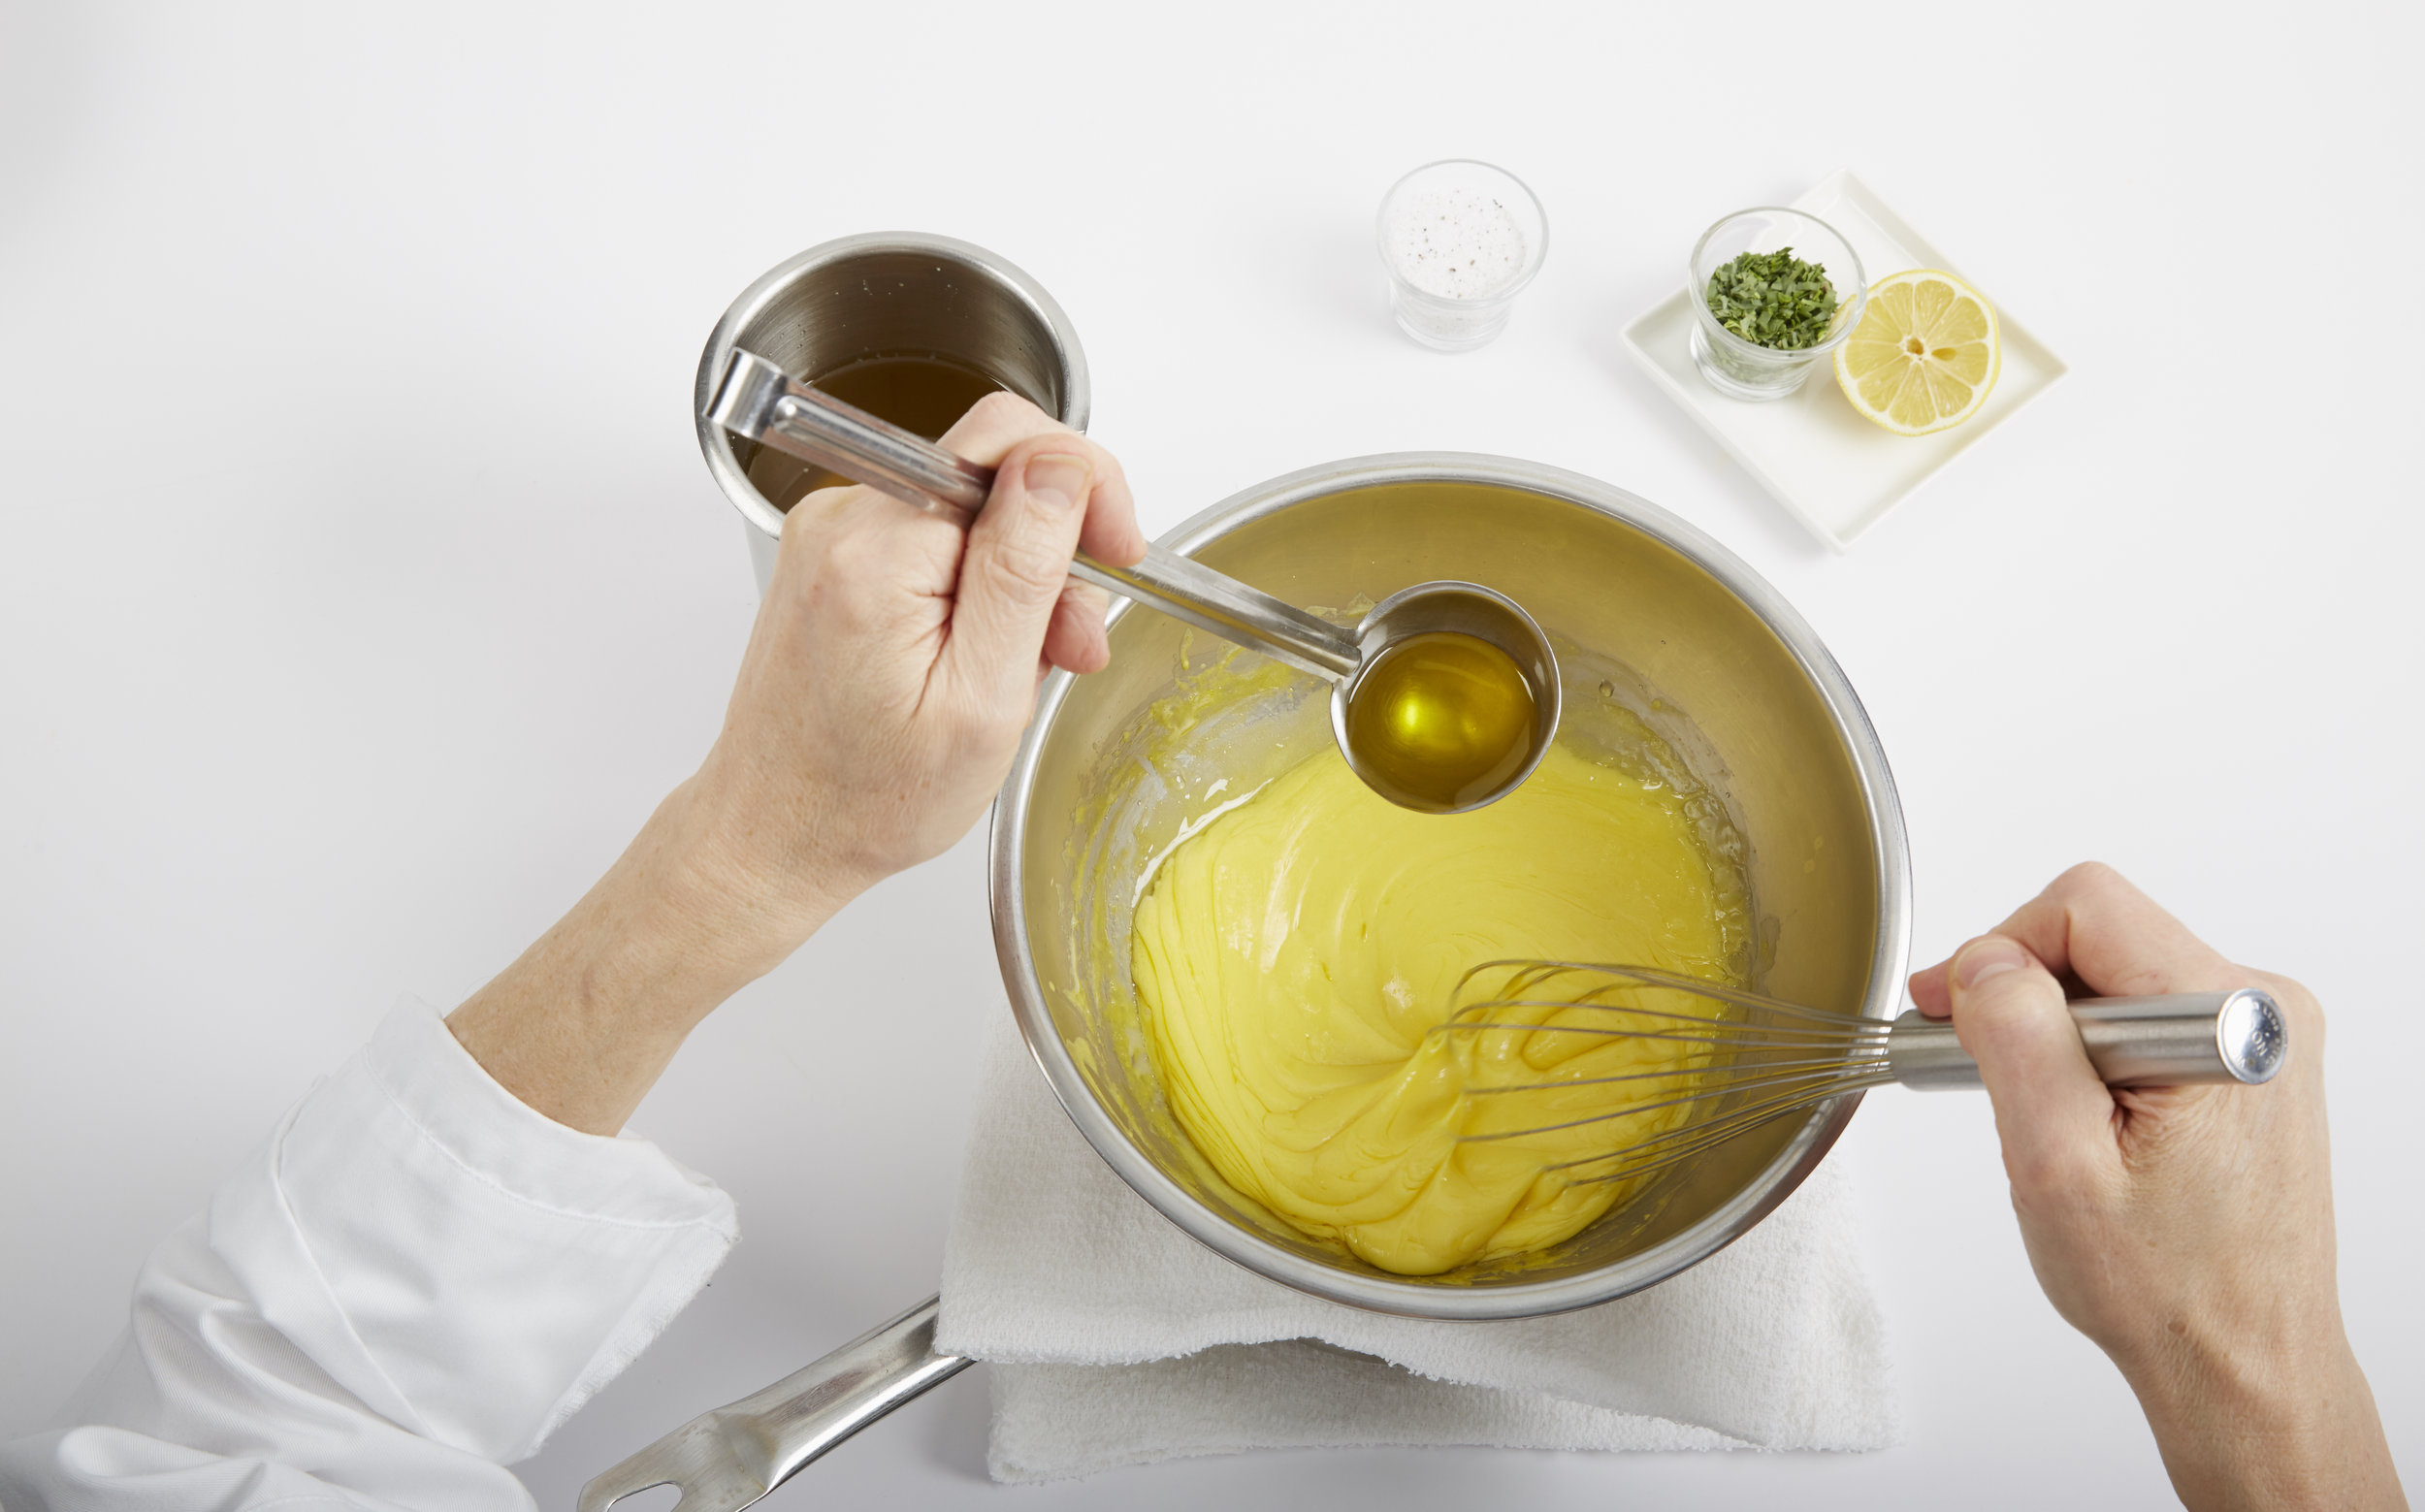 Hollandaise and Béarnaise Sauce - Recipes and Techniques